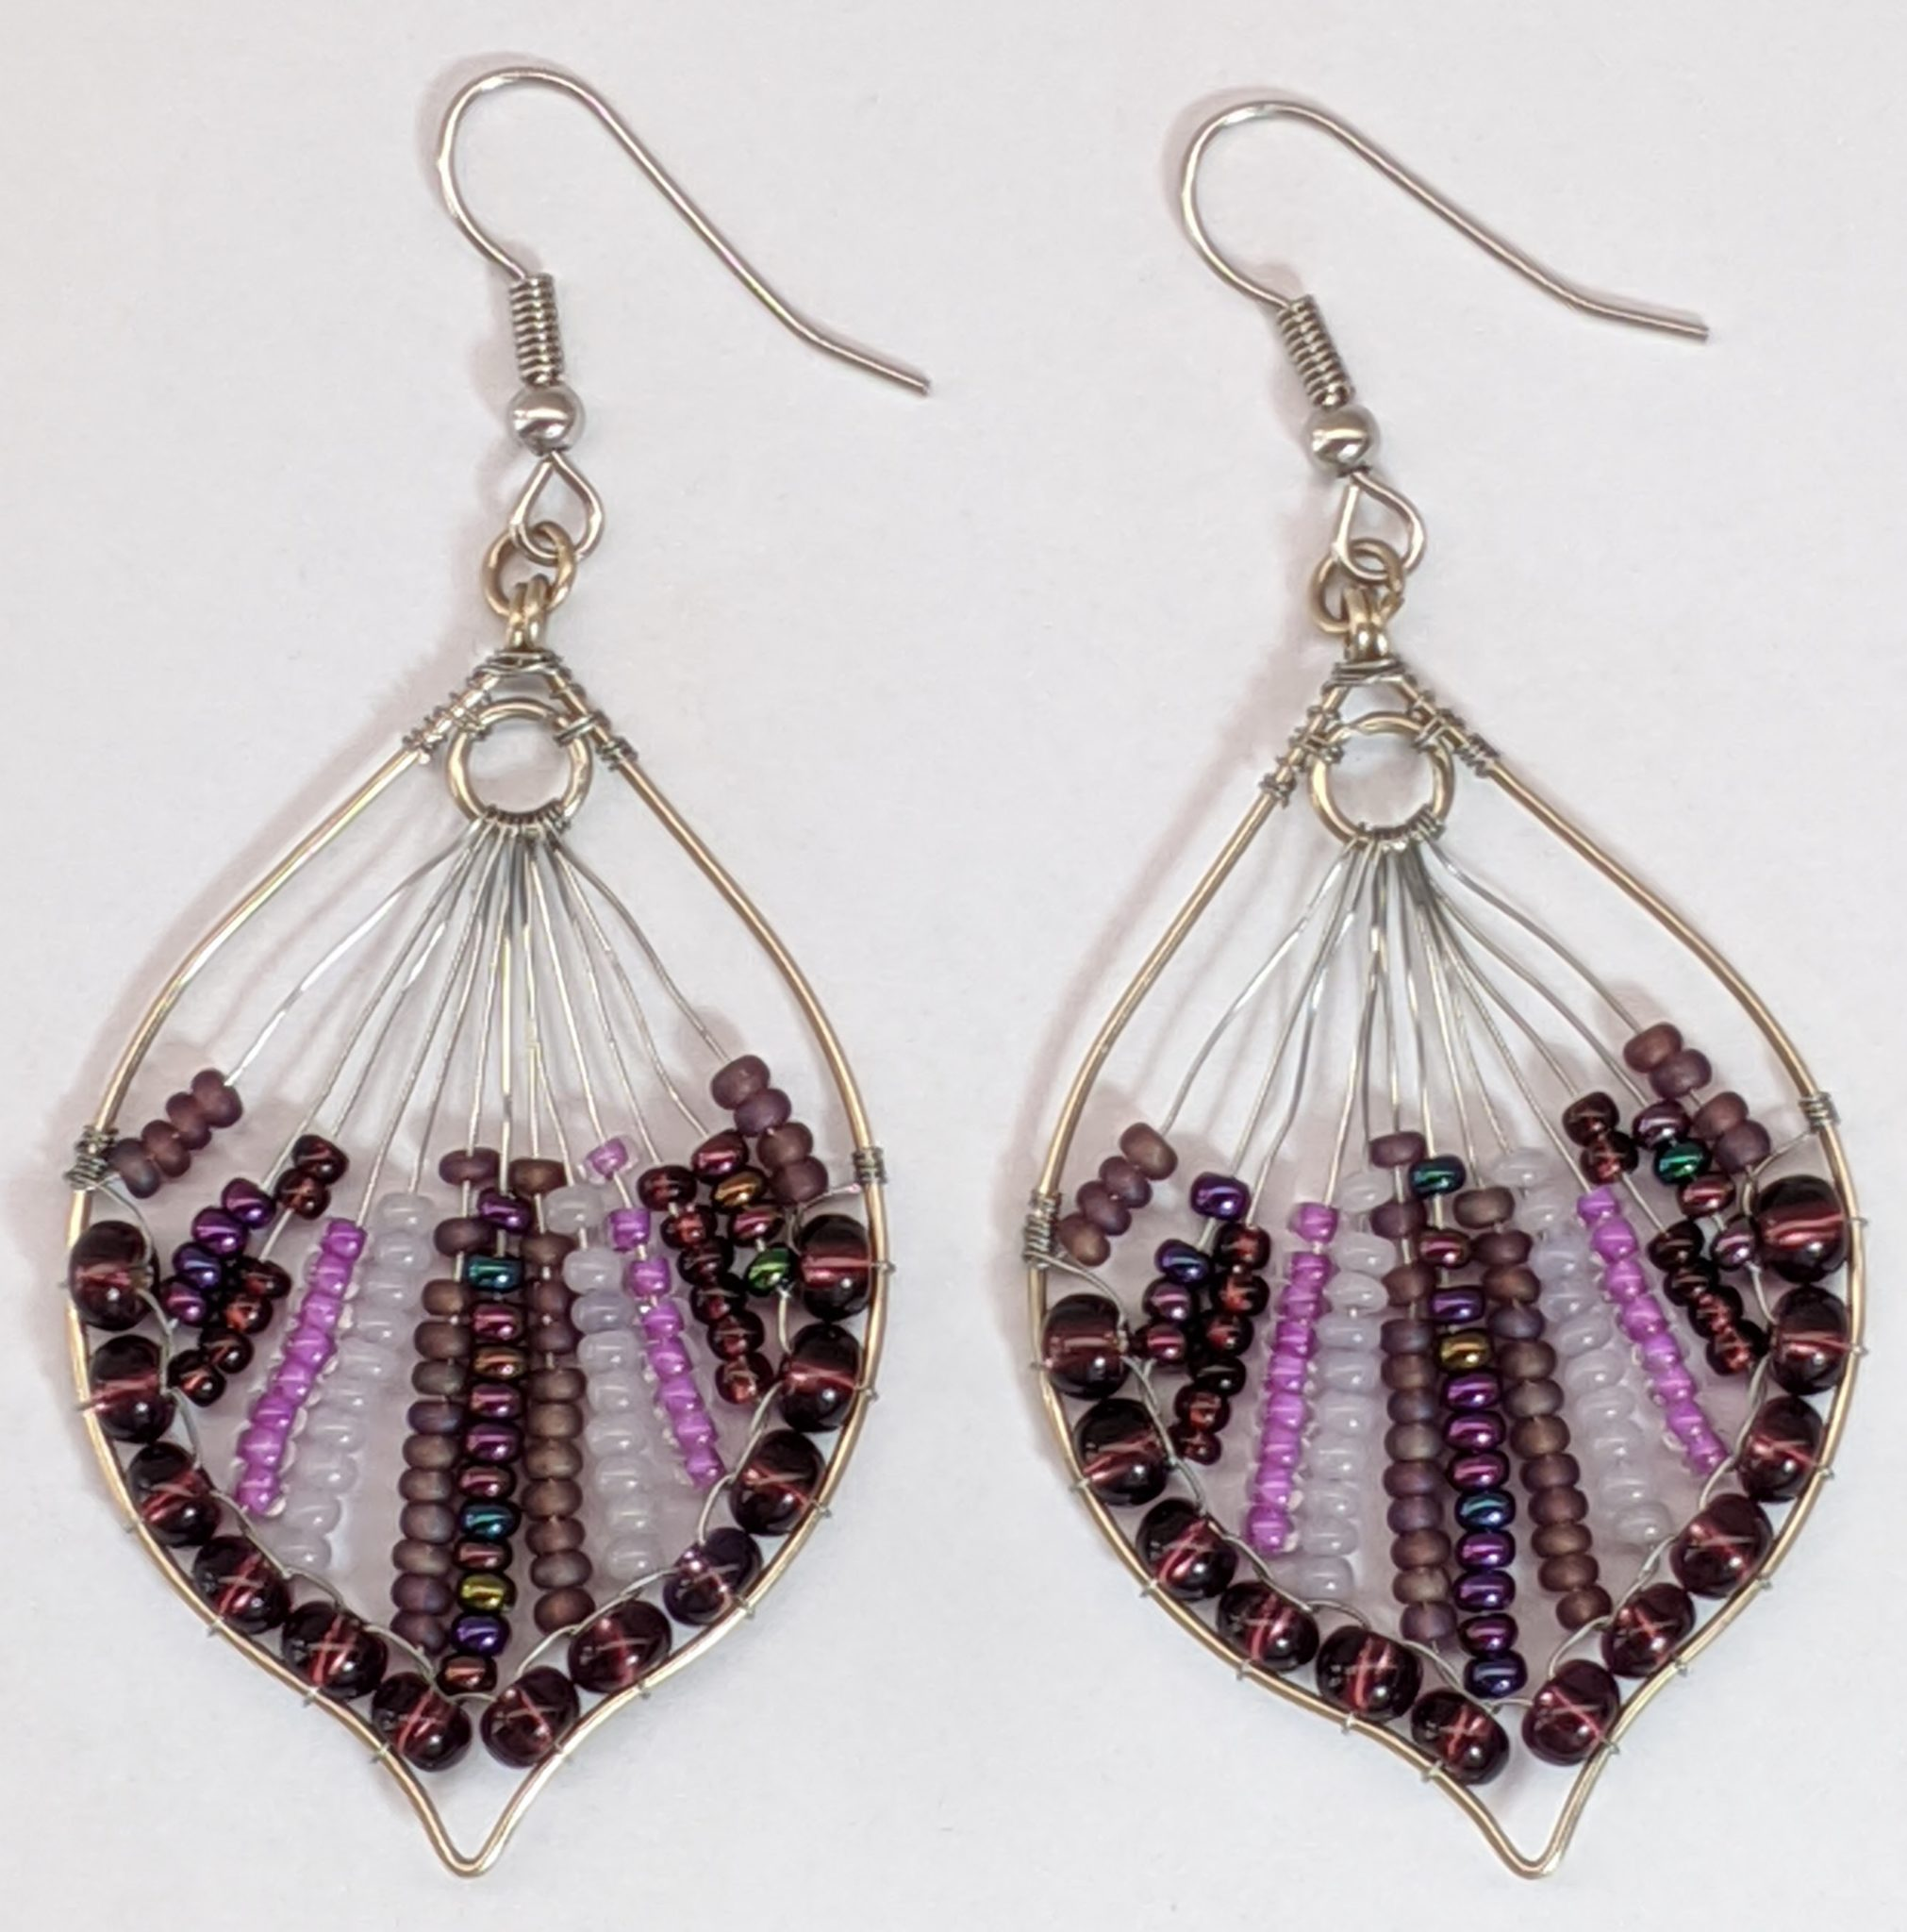 Peacock Tail Beaded Earrings - Purples